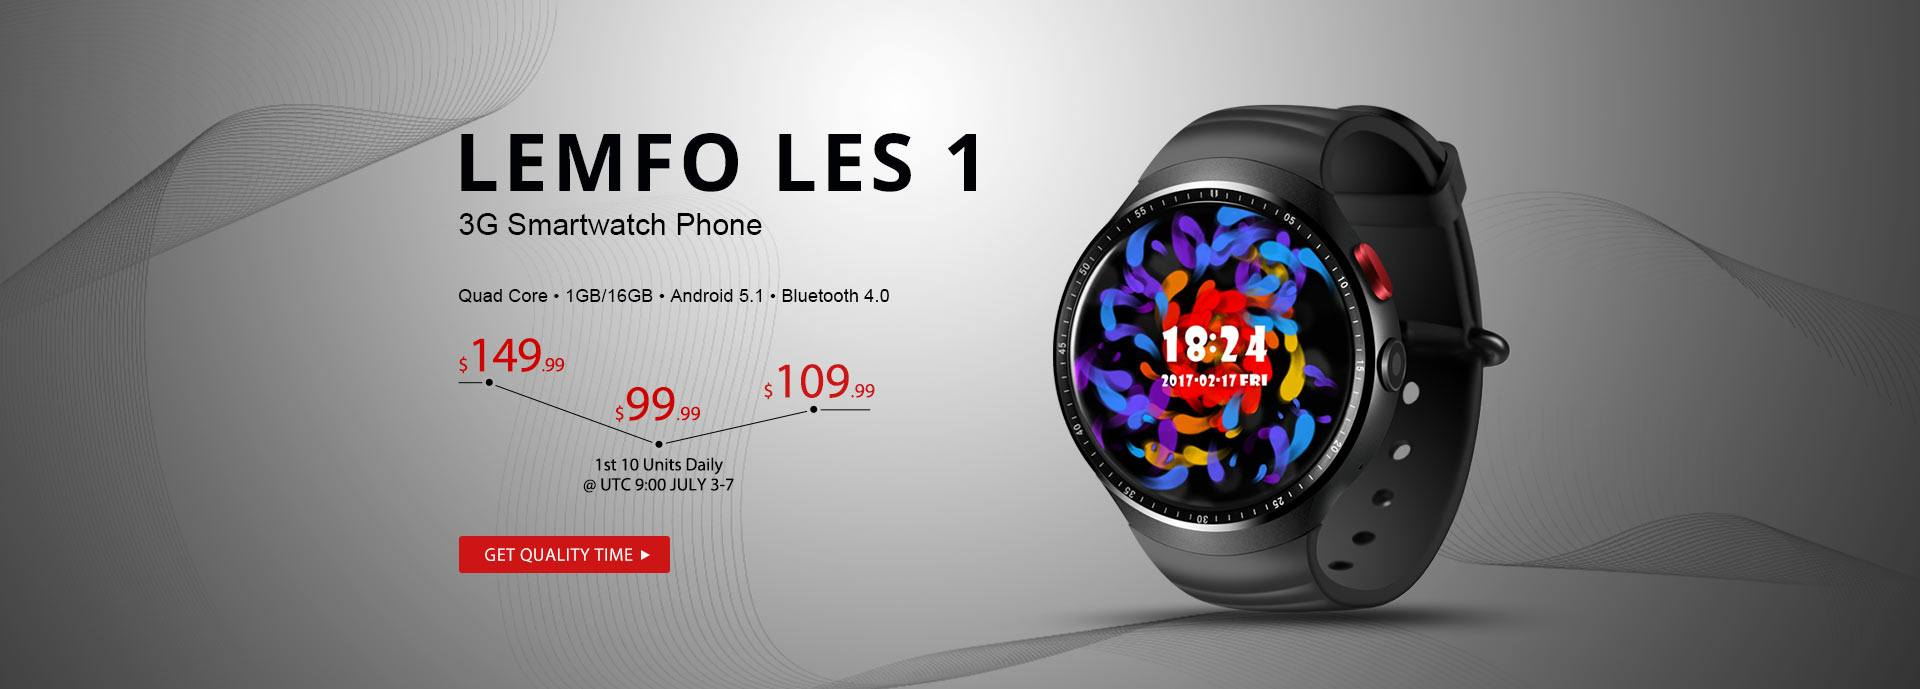 The 2017 Top Smartwatch Phone LEMFO LES 1 Flash Sale From $99.99